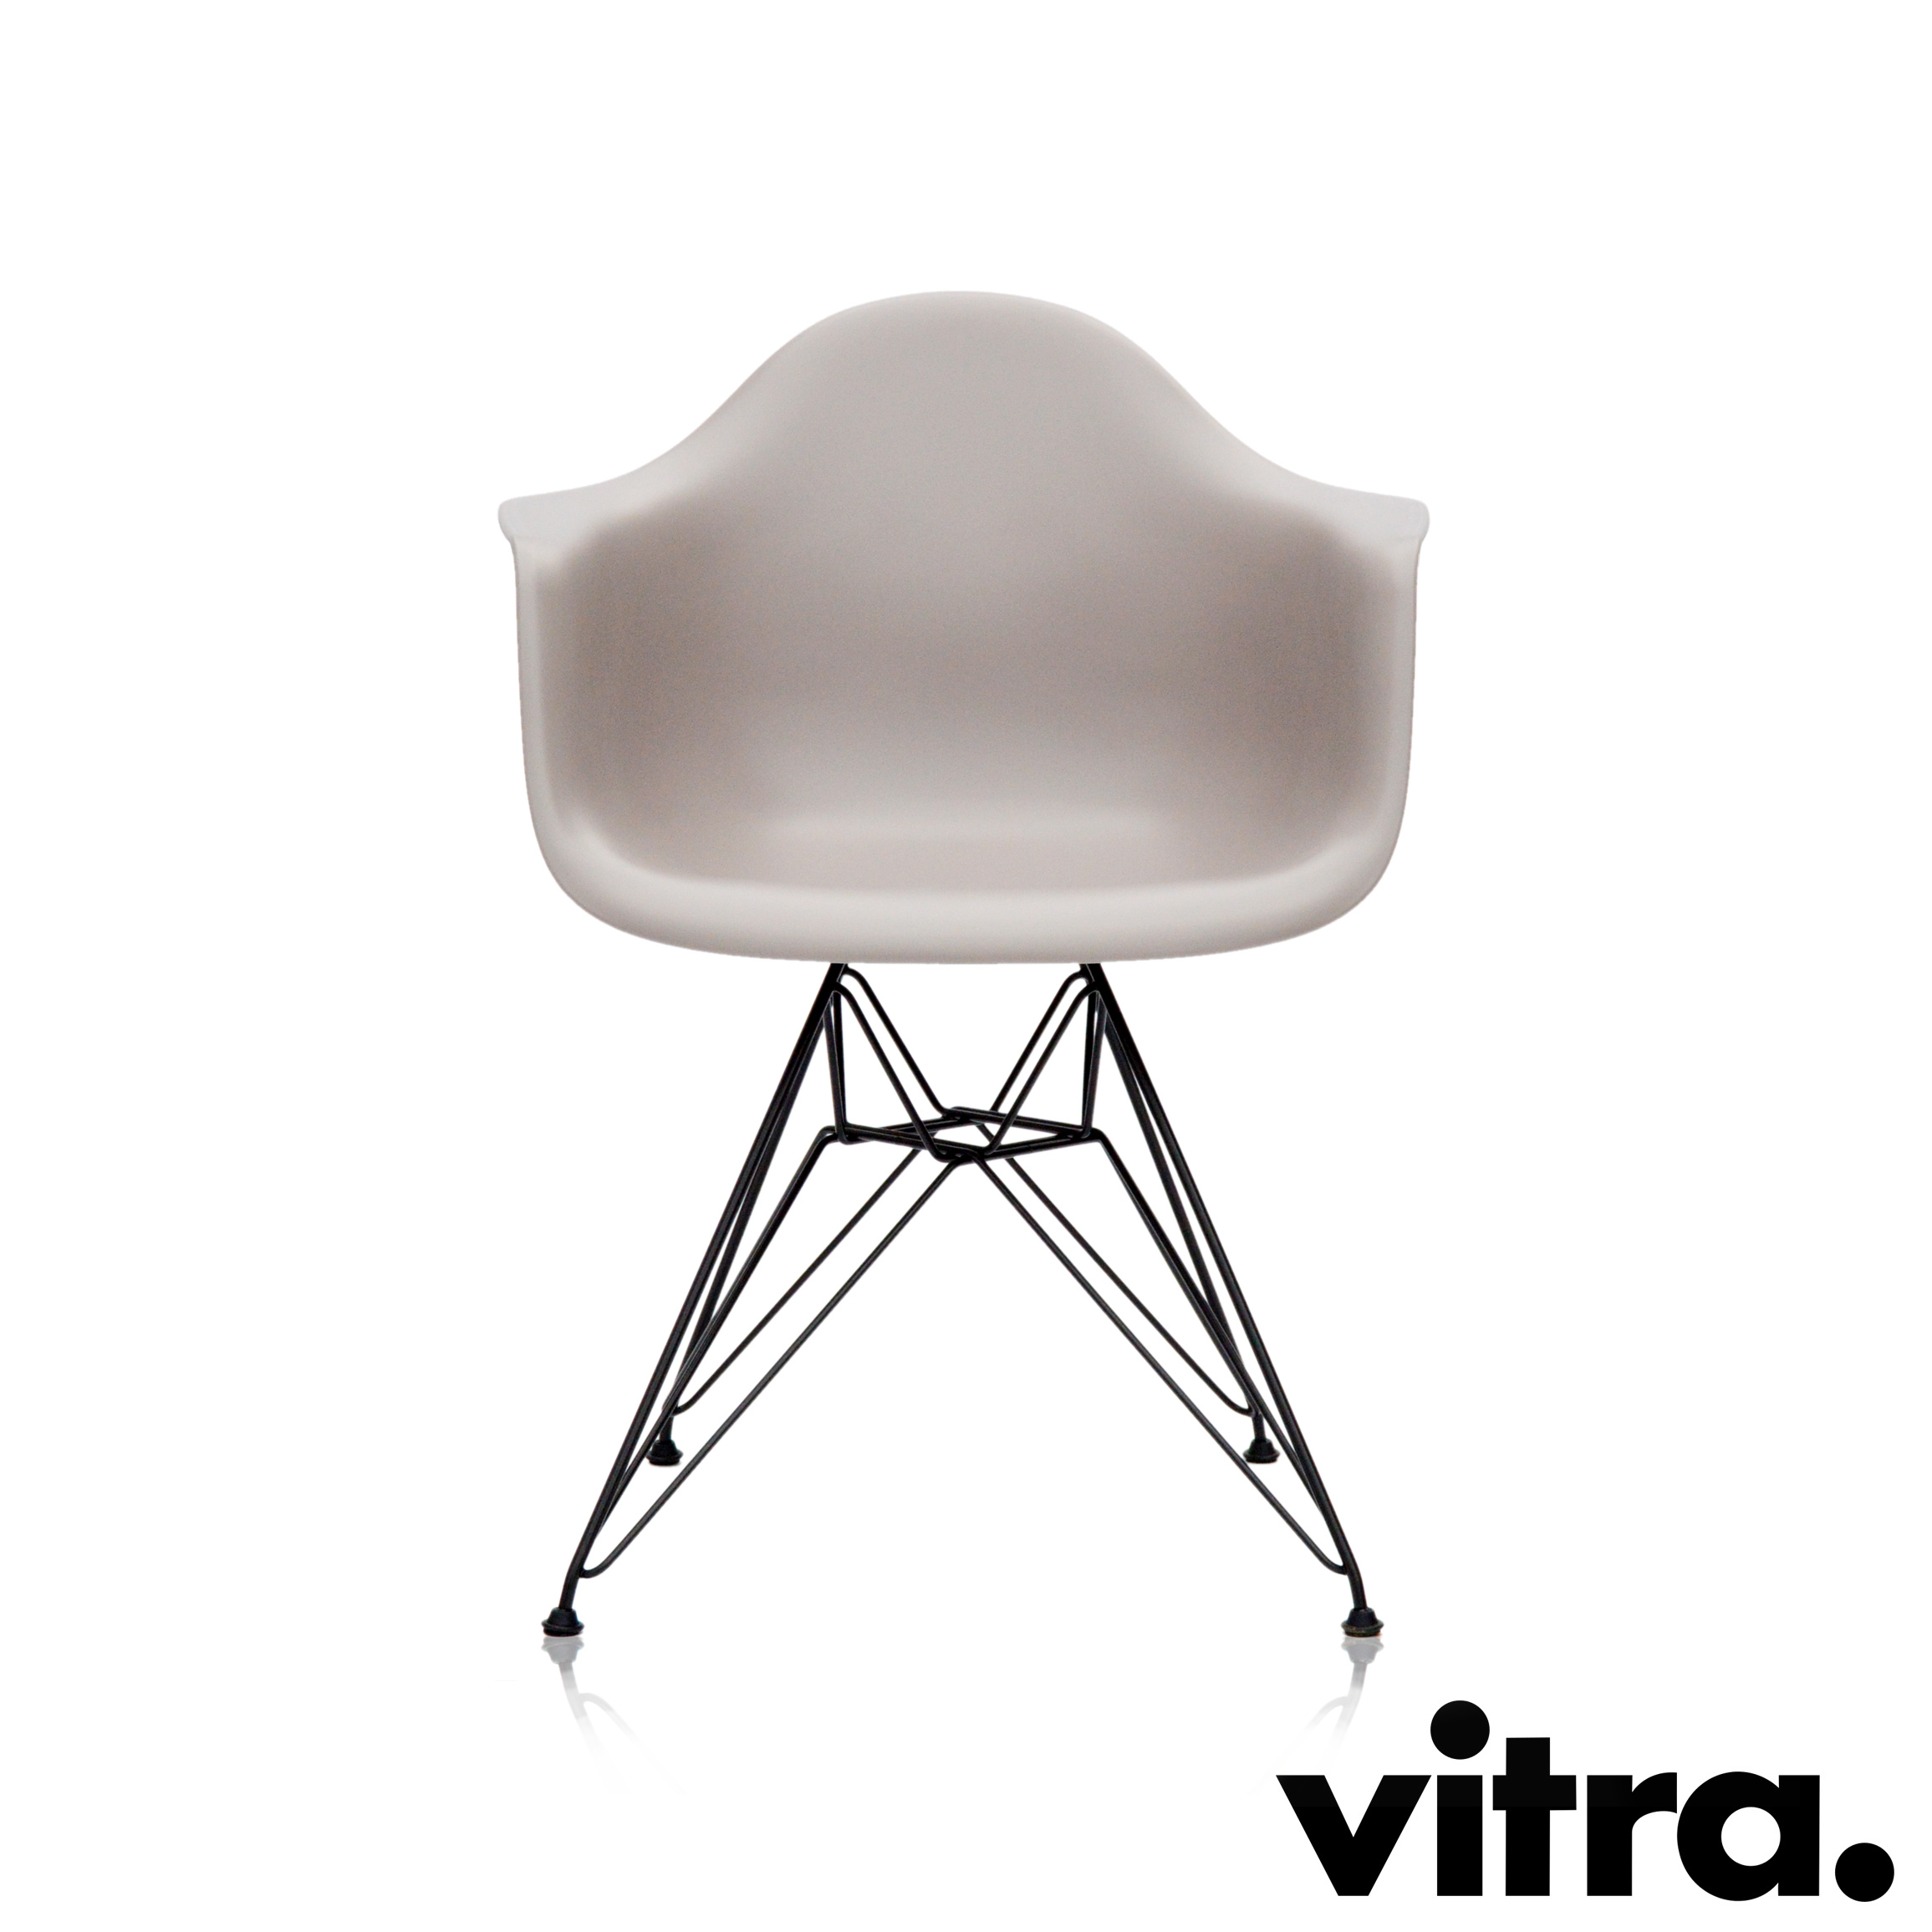 vitra eames stuhl stunning full size of eames elephant fr barhocker eames stuhl eames dsw style. Black Bedroom Furniture Sets. Home Design Ideas